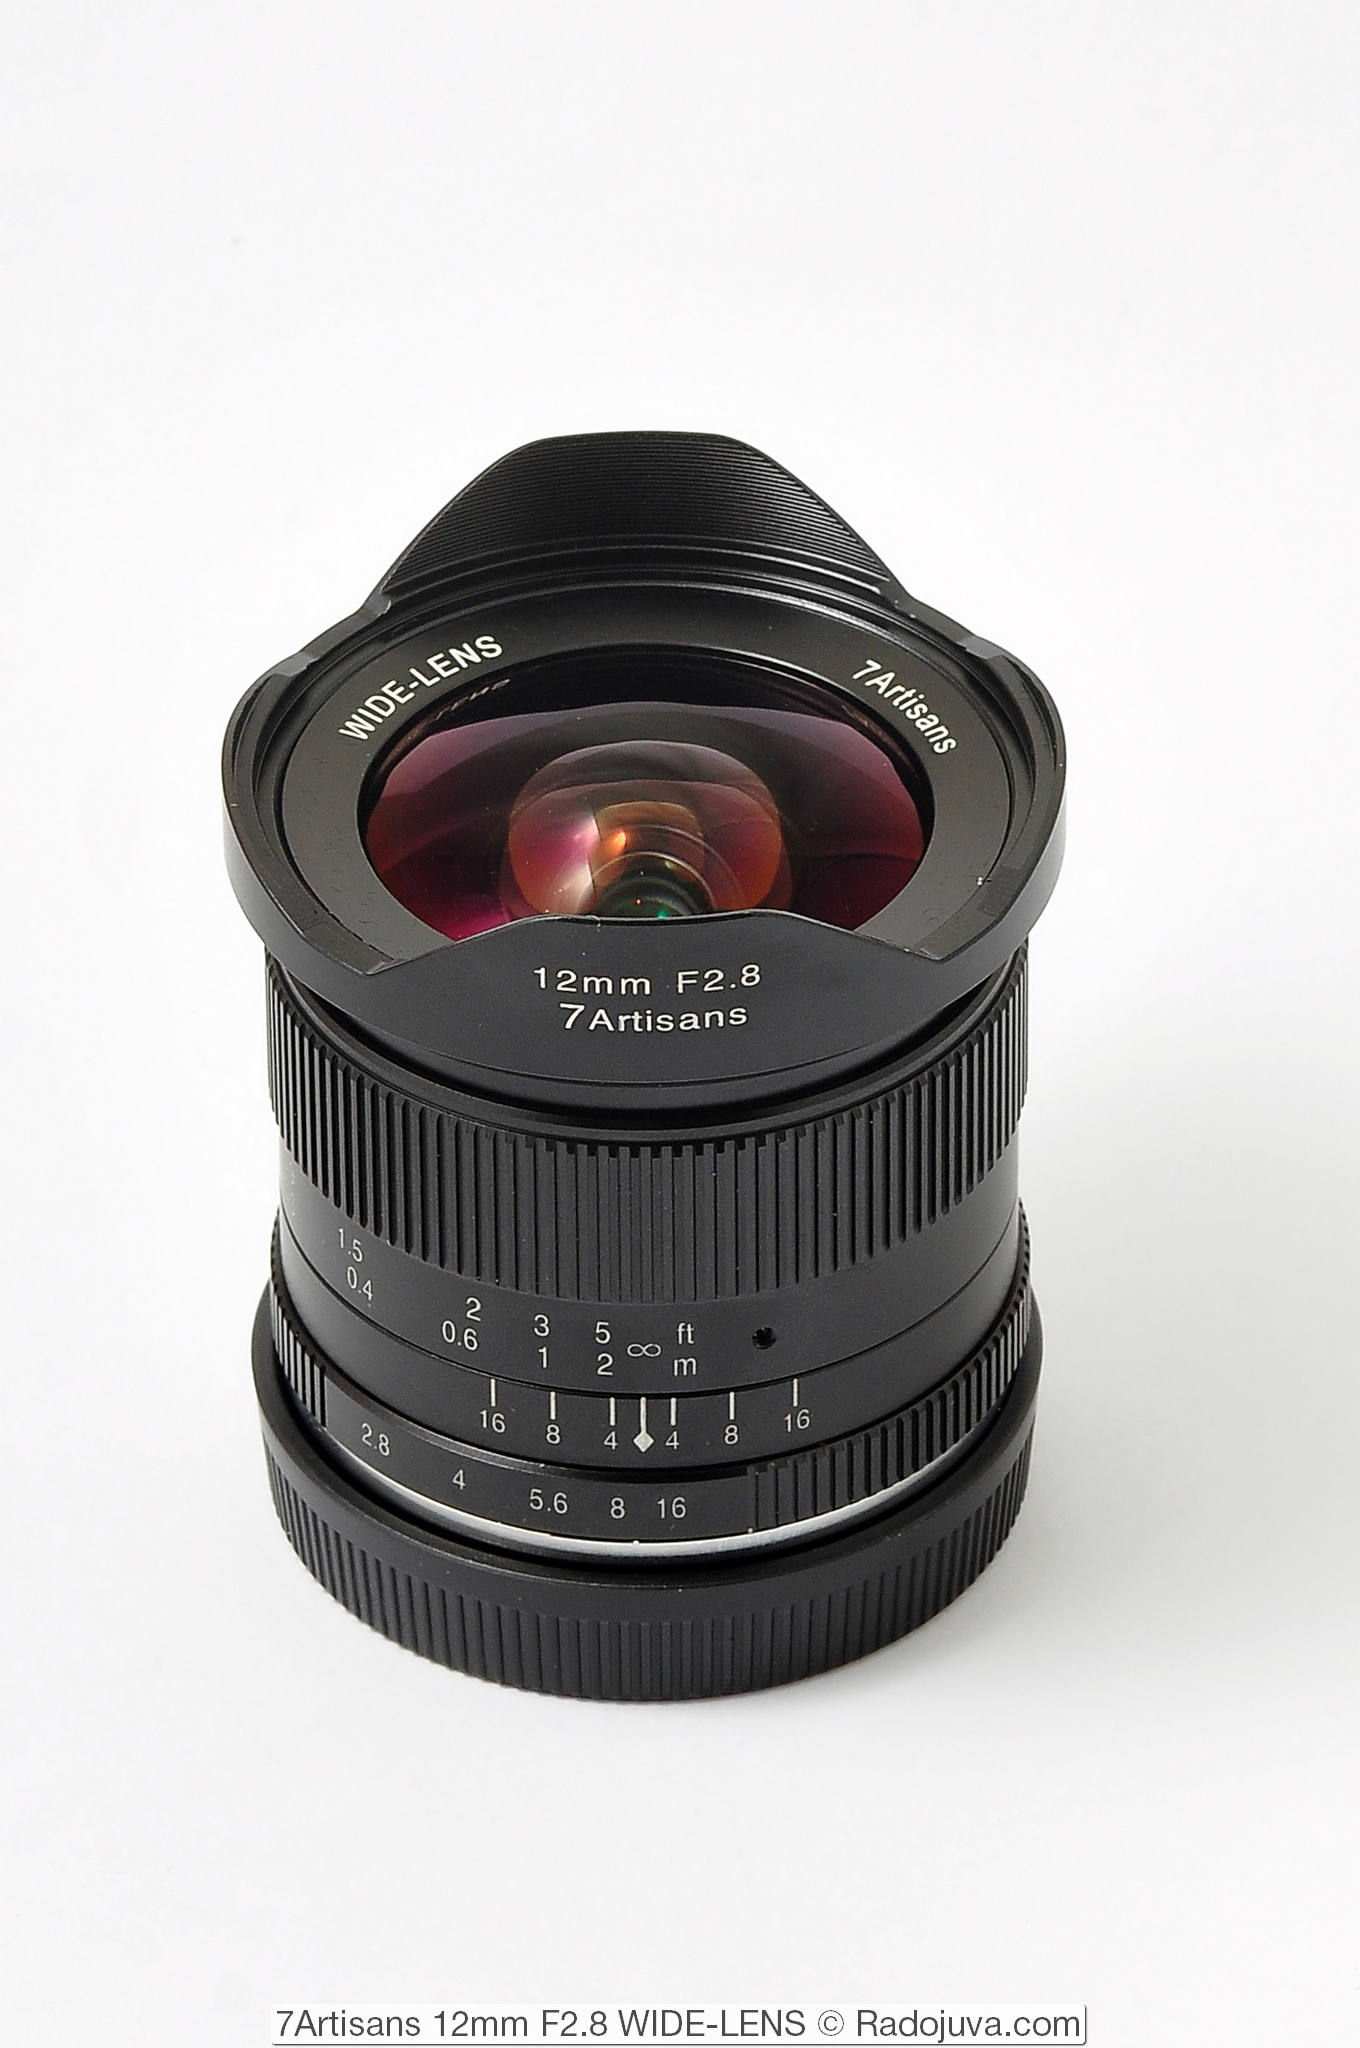 7Artisans 12mm F2.8 WIDE-LENS